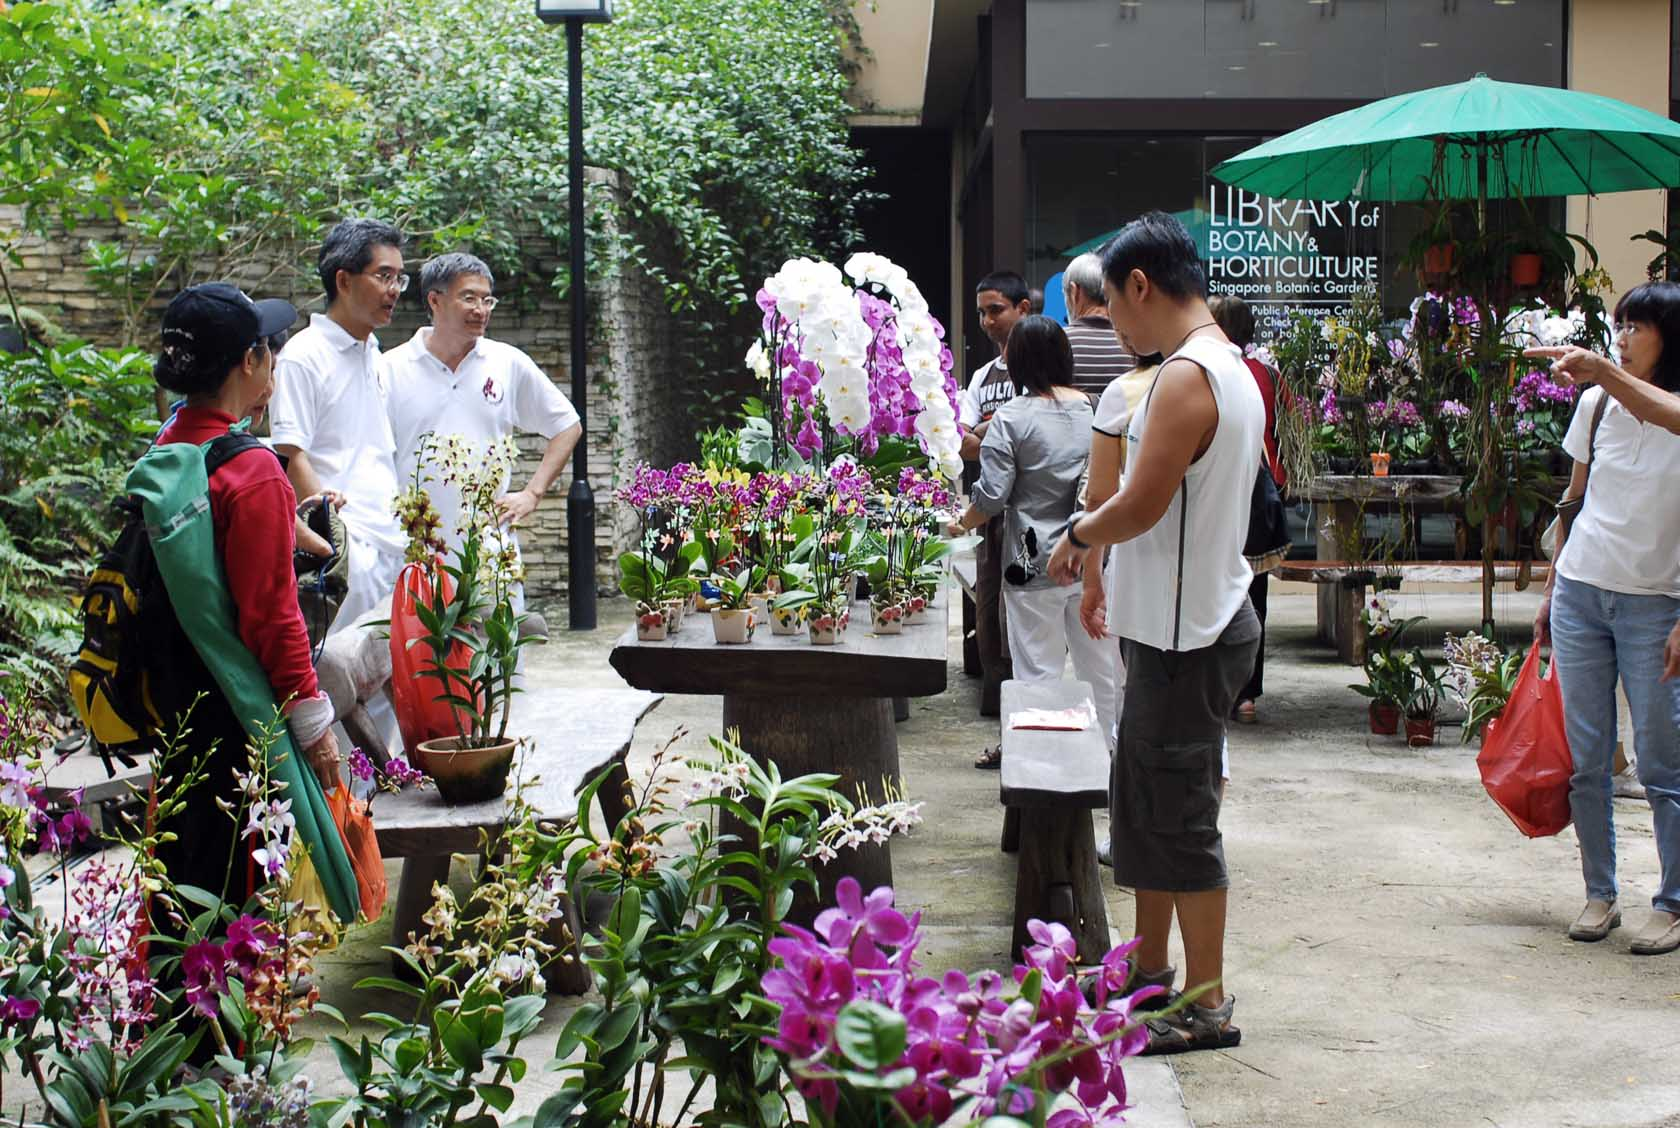 Visitors viewing plants on sale at the Courtyard of the Library of Botany & Horticulture (Tanglin Gate, Botany Centre)